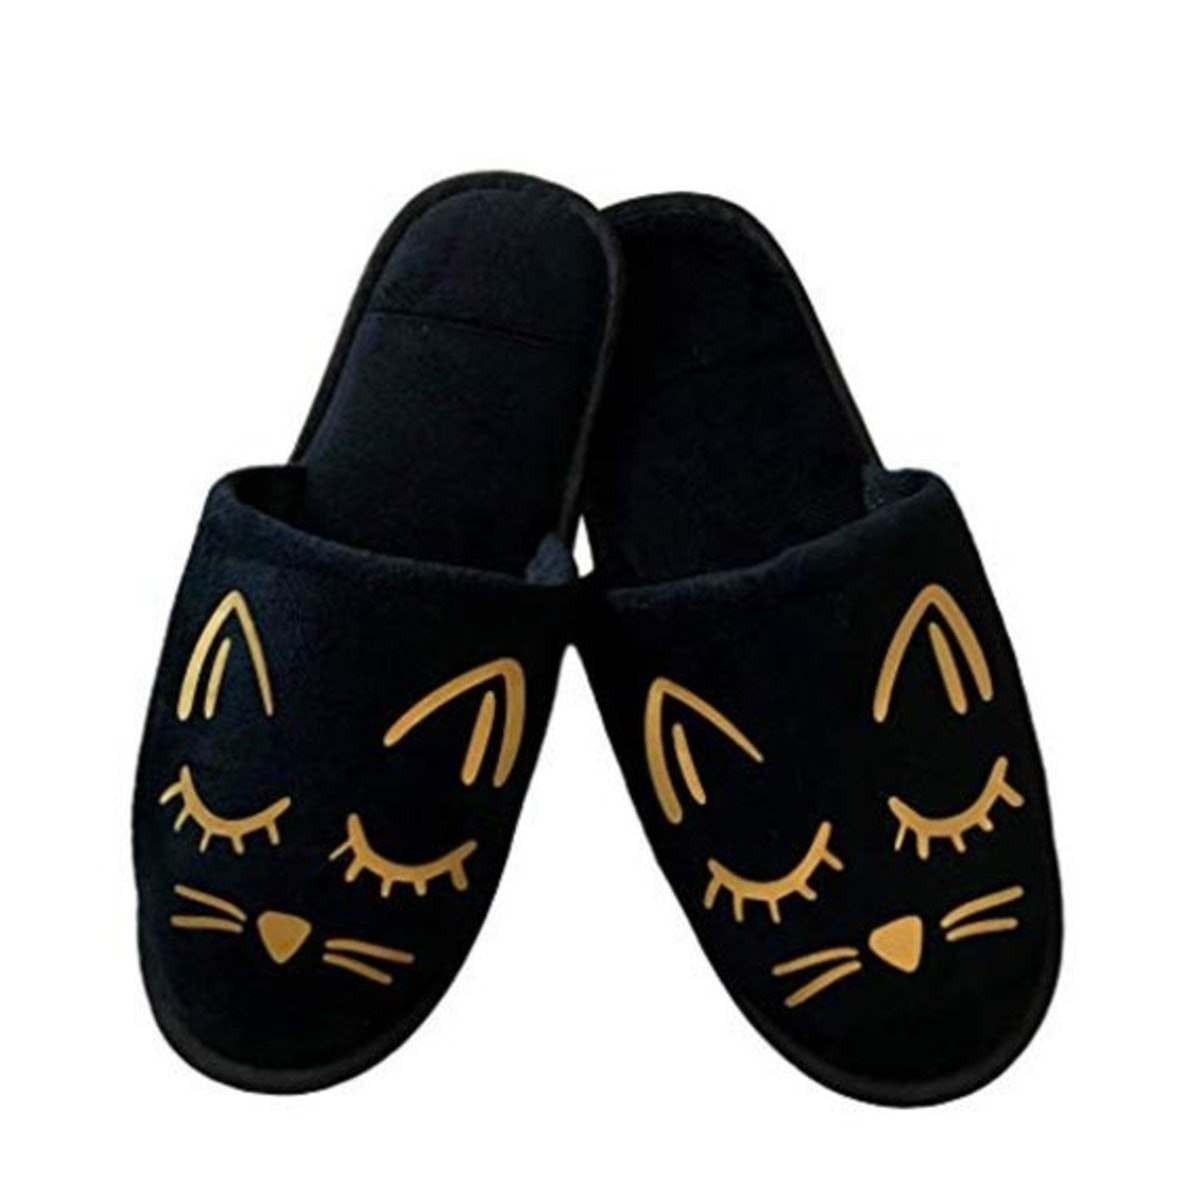 Cozy Cat Slippers - Black and Gold